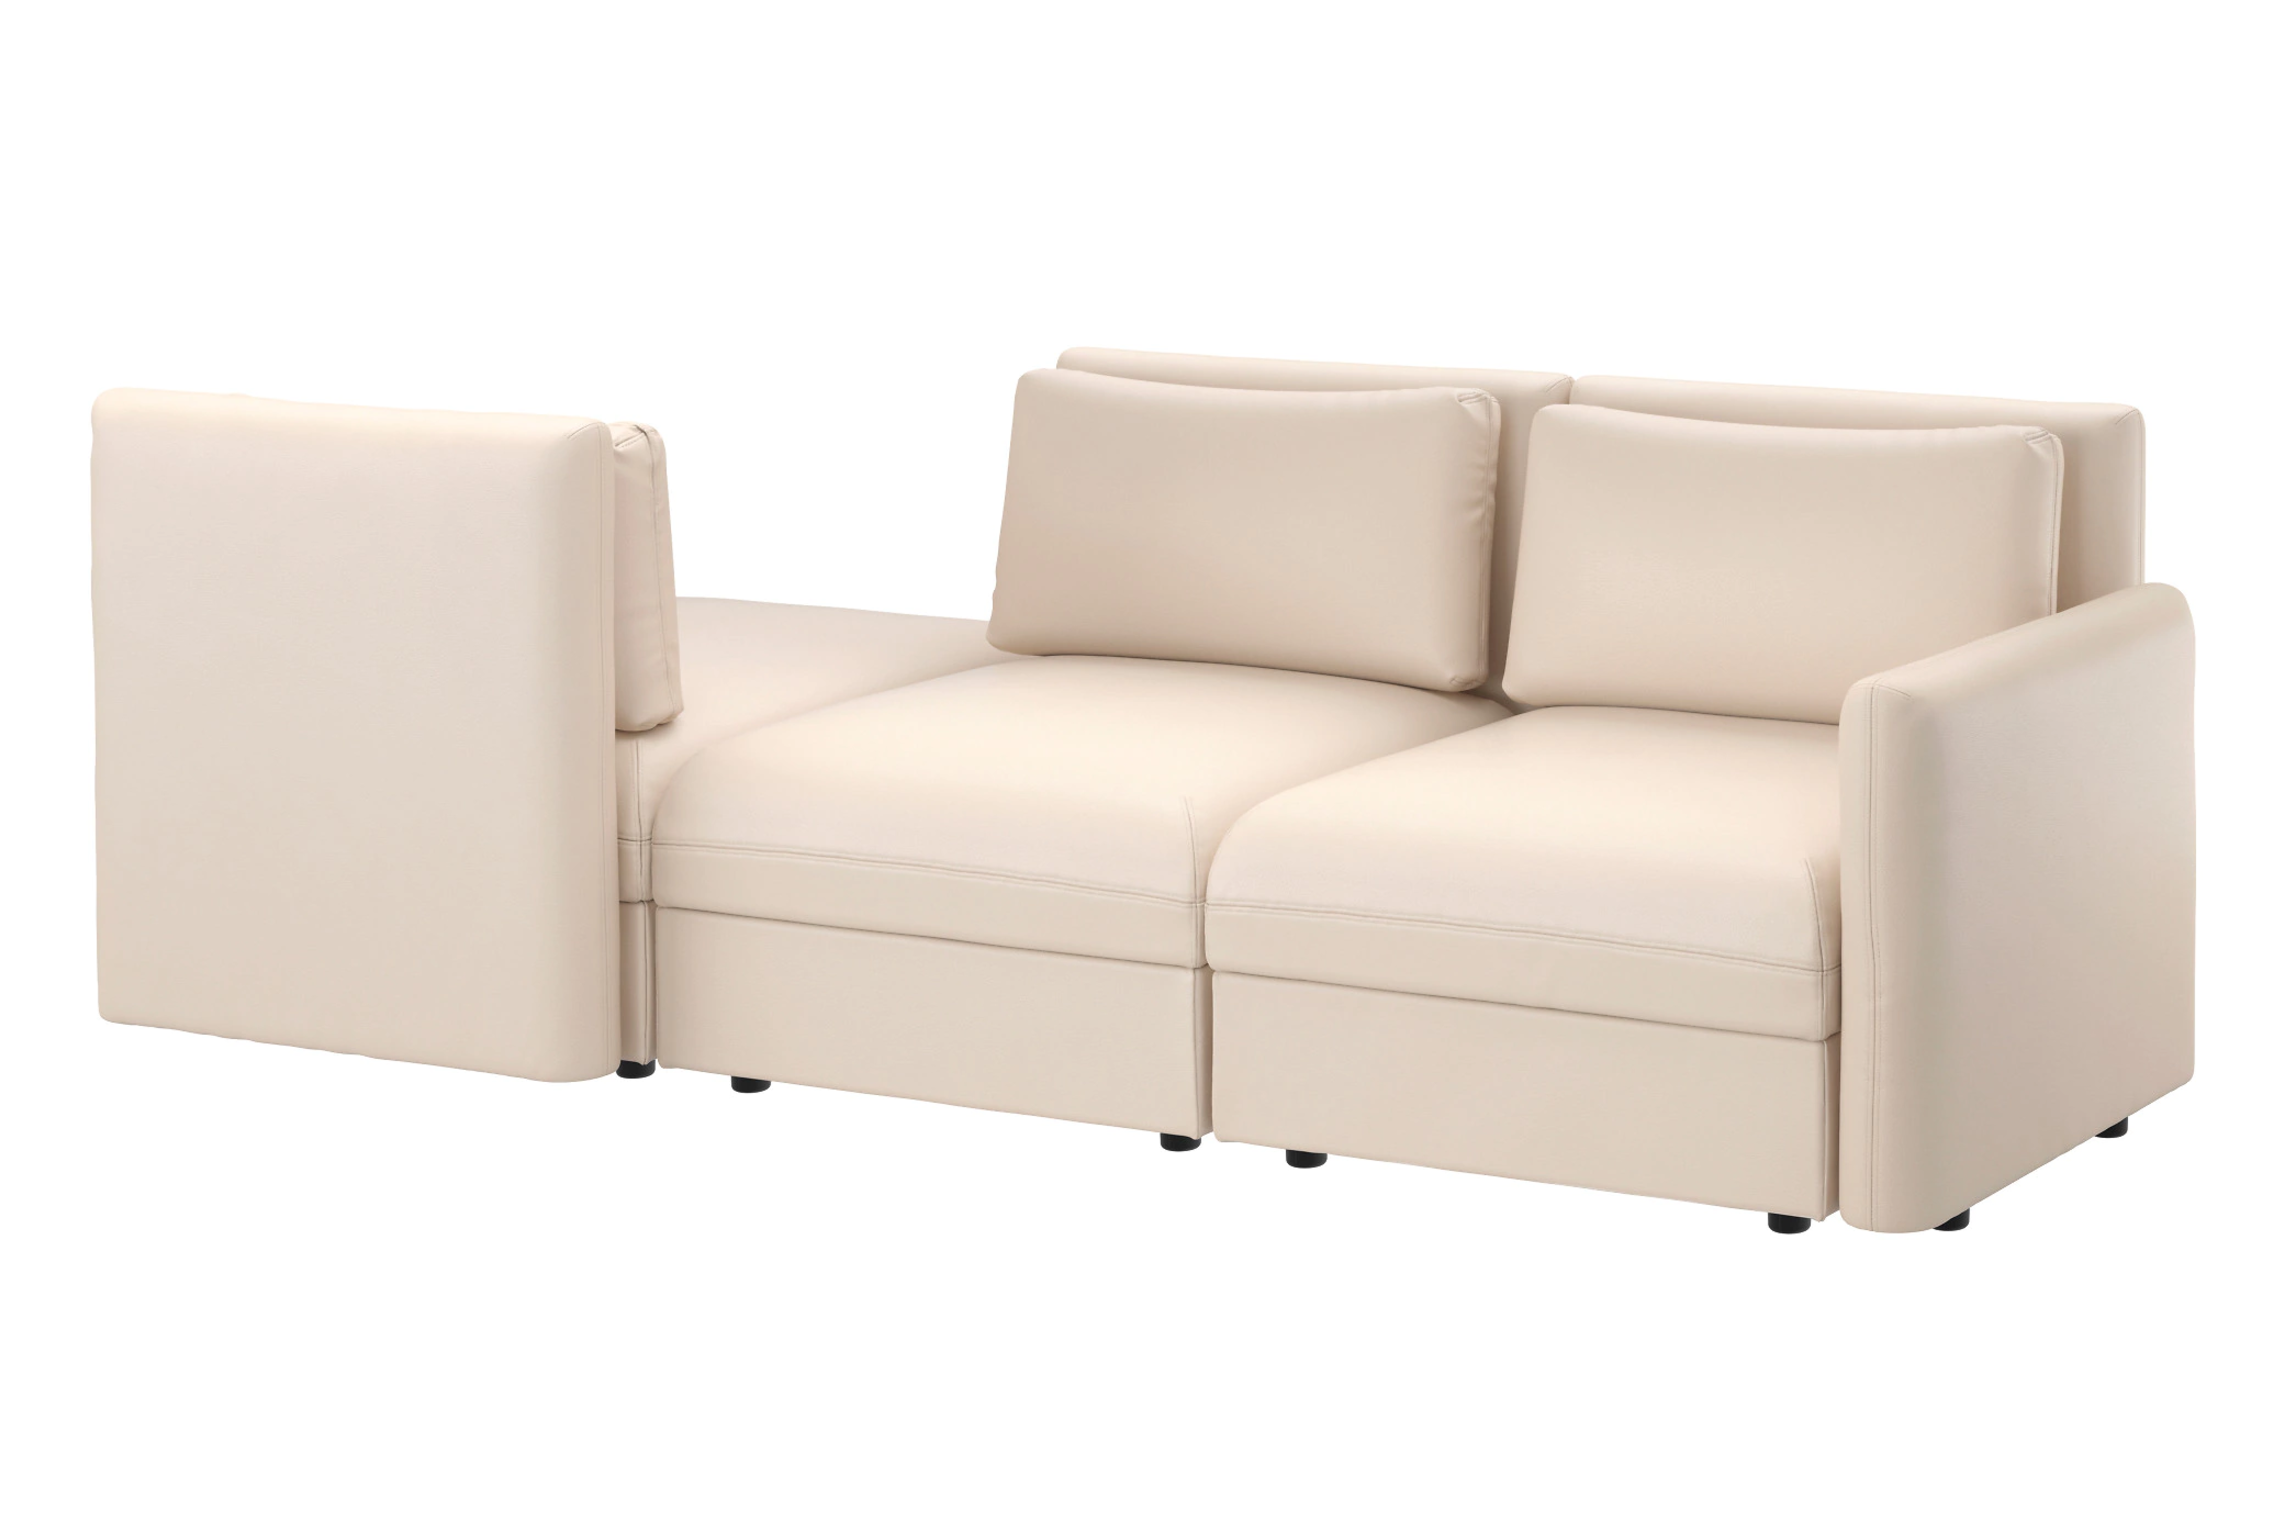 most comfortable ikea sofa sofas uk ebay we reviewed irl these are the apartment therapy squad